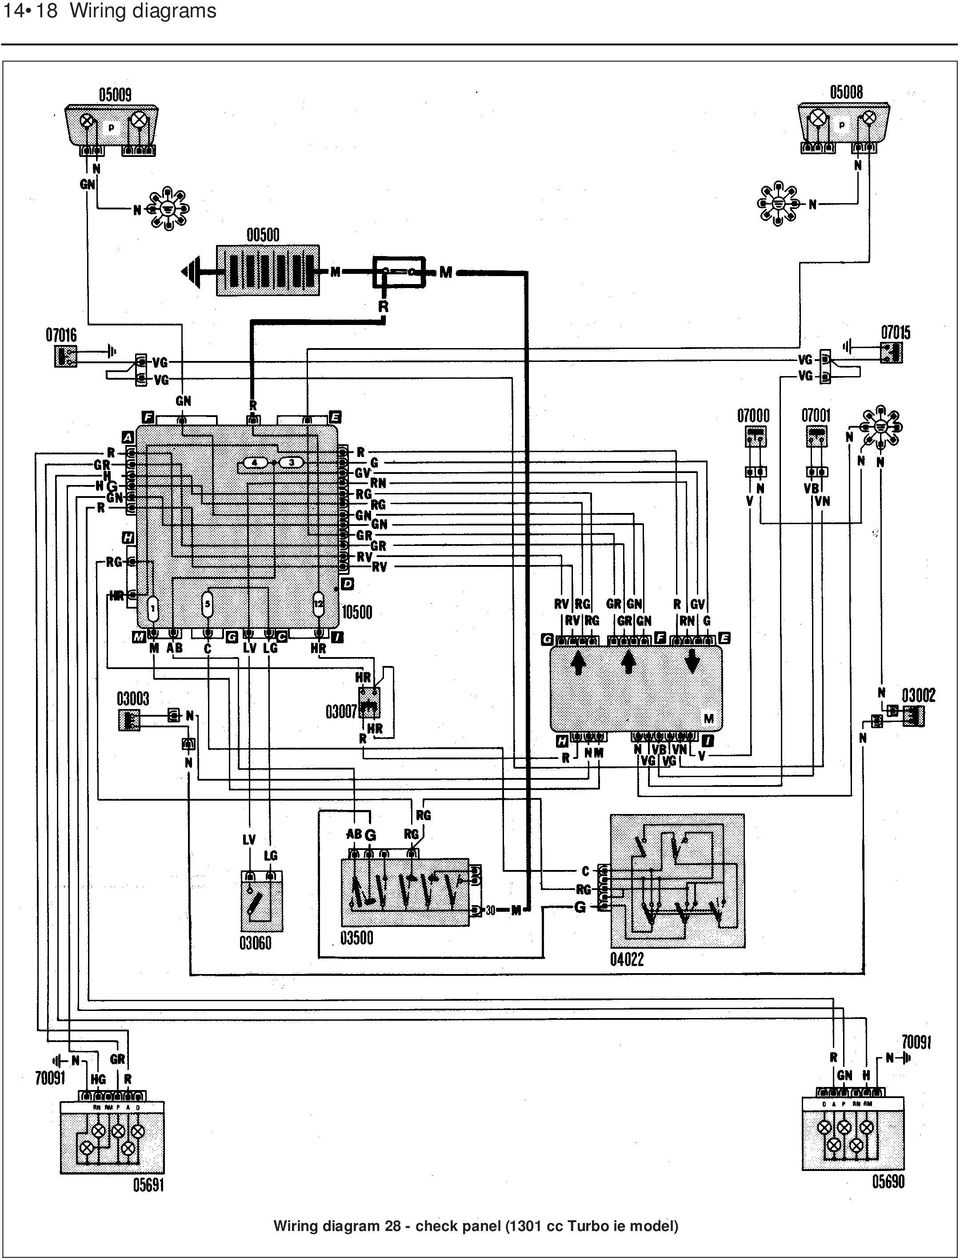 Wiring Diagrams Component Key For 1 To 29 Note Not 2005 Toyota Corolla Engine Diagram Distributor Less 28 Check